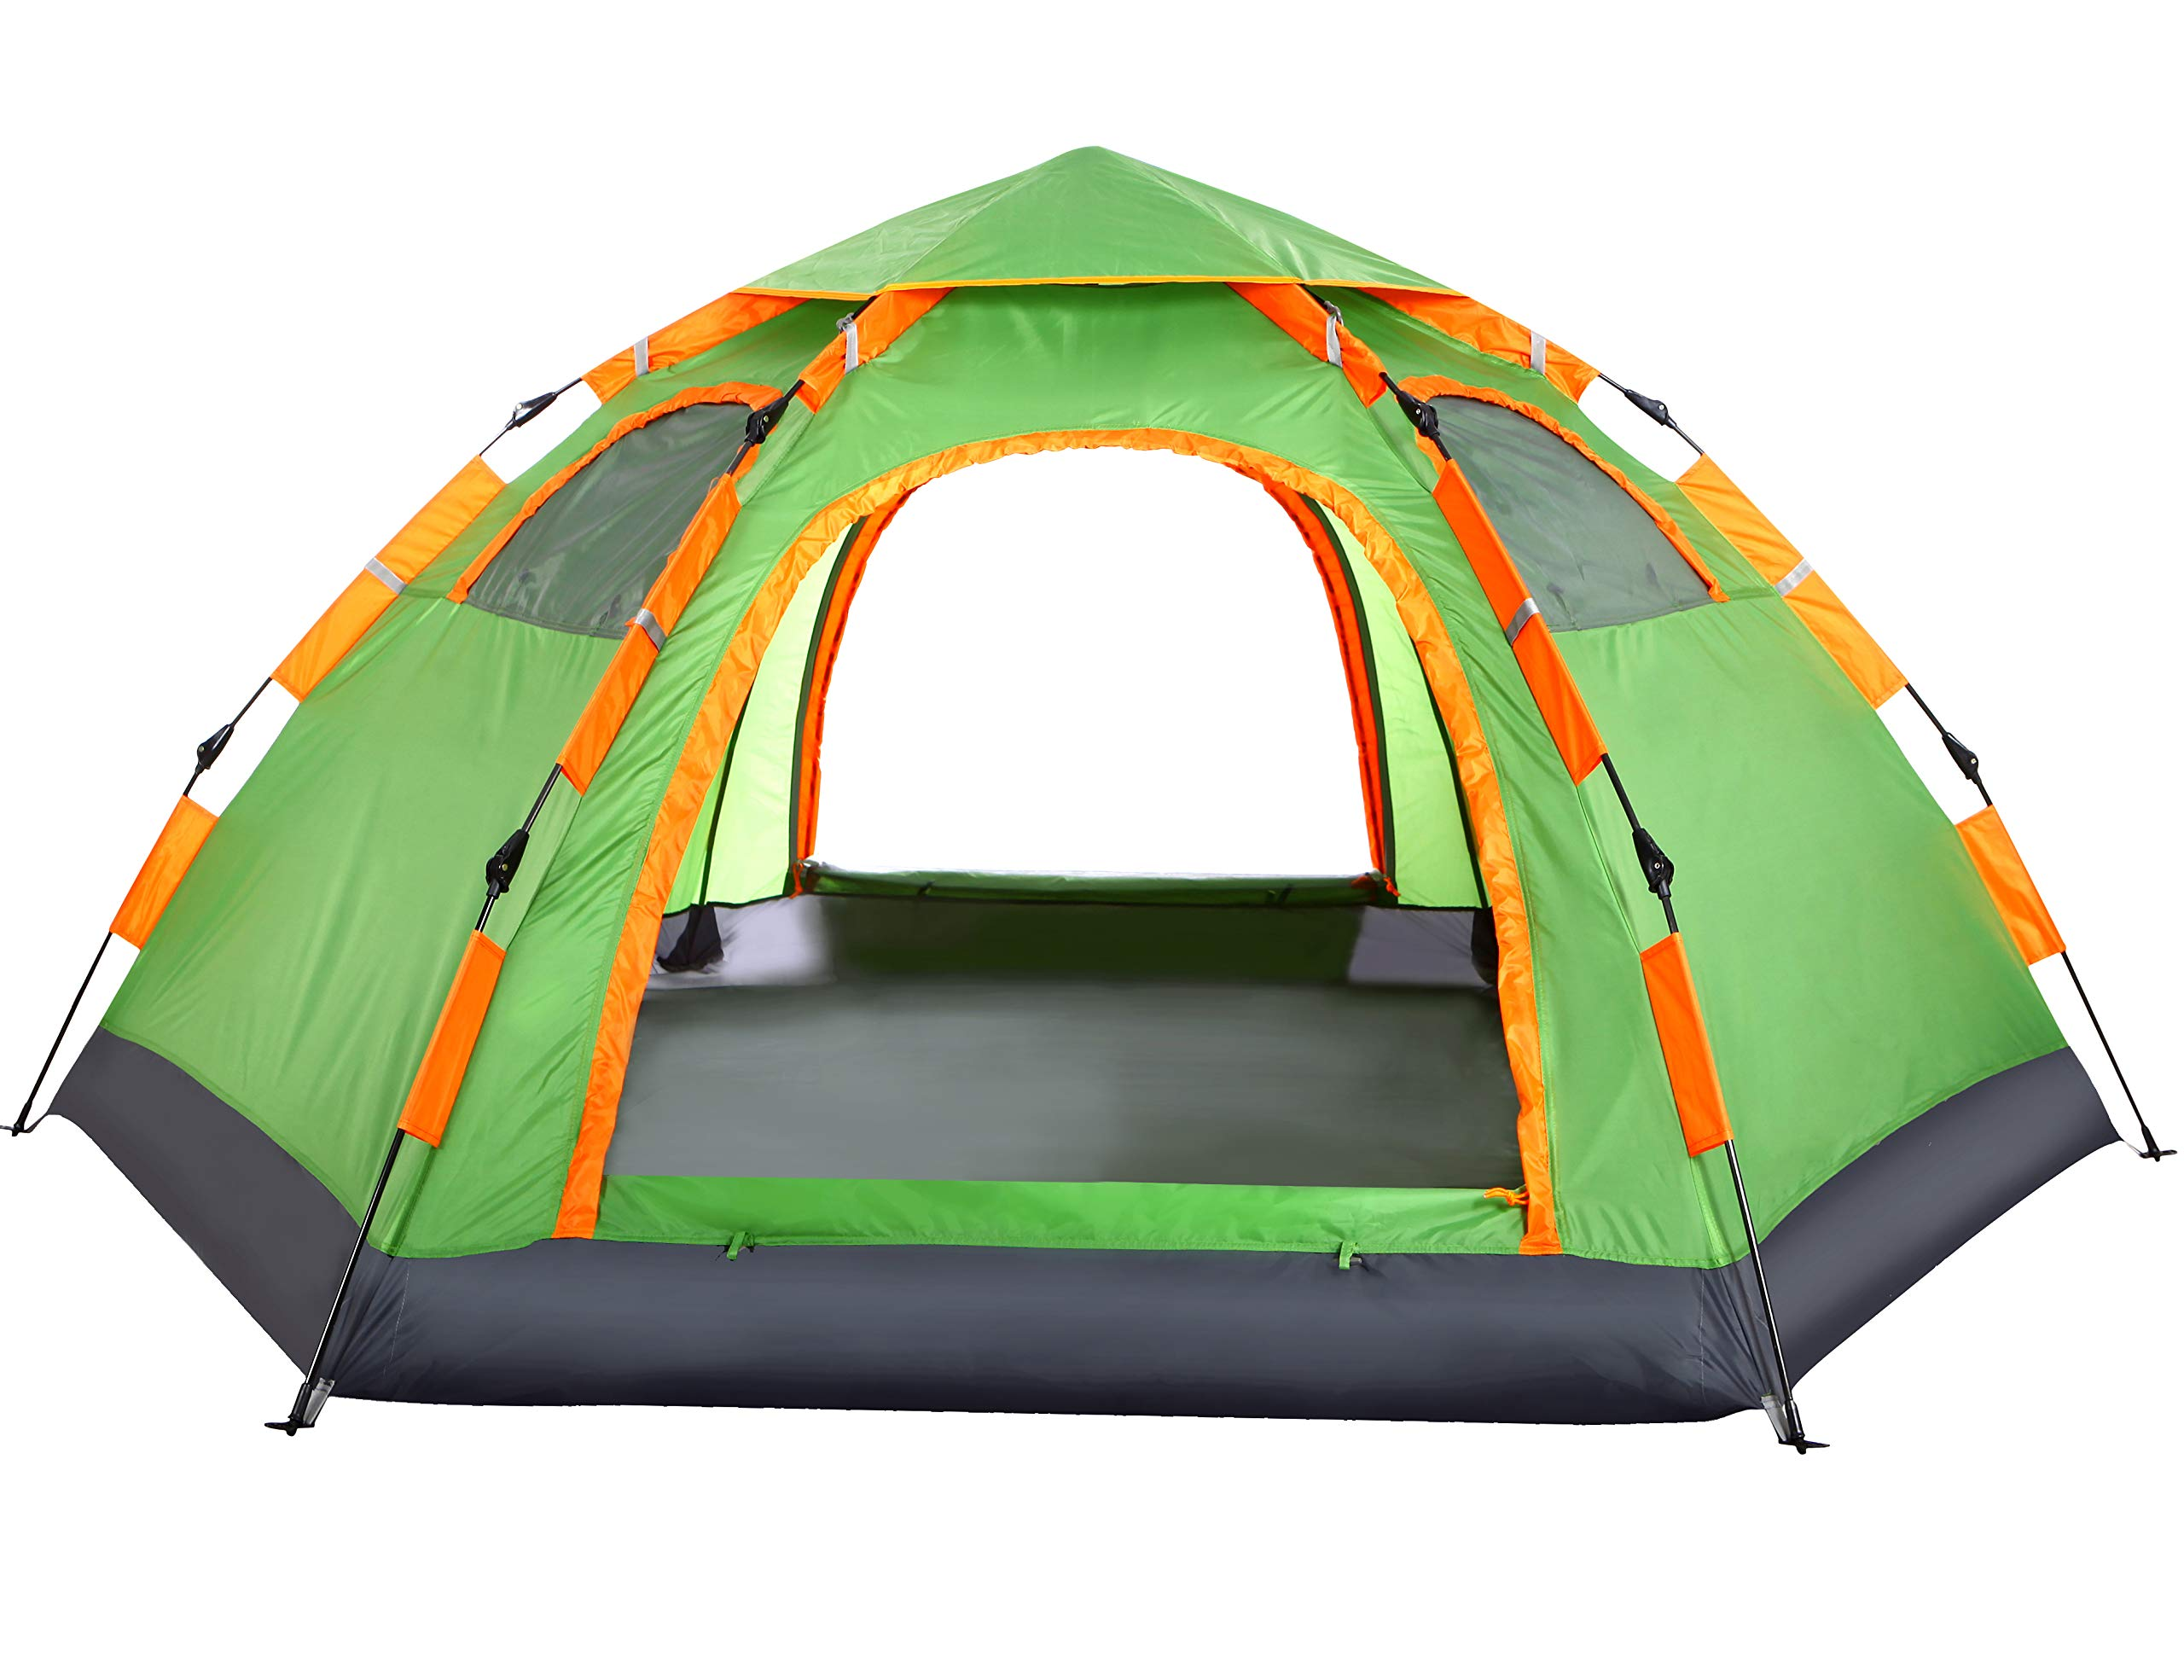 wnnideo instant family tent 6 person large automatic pop up tents waterproof new 667673840236 ebay. Black Bedroom Furniture Sets. Home Design Ideas